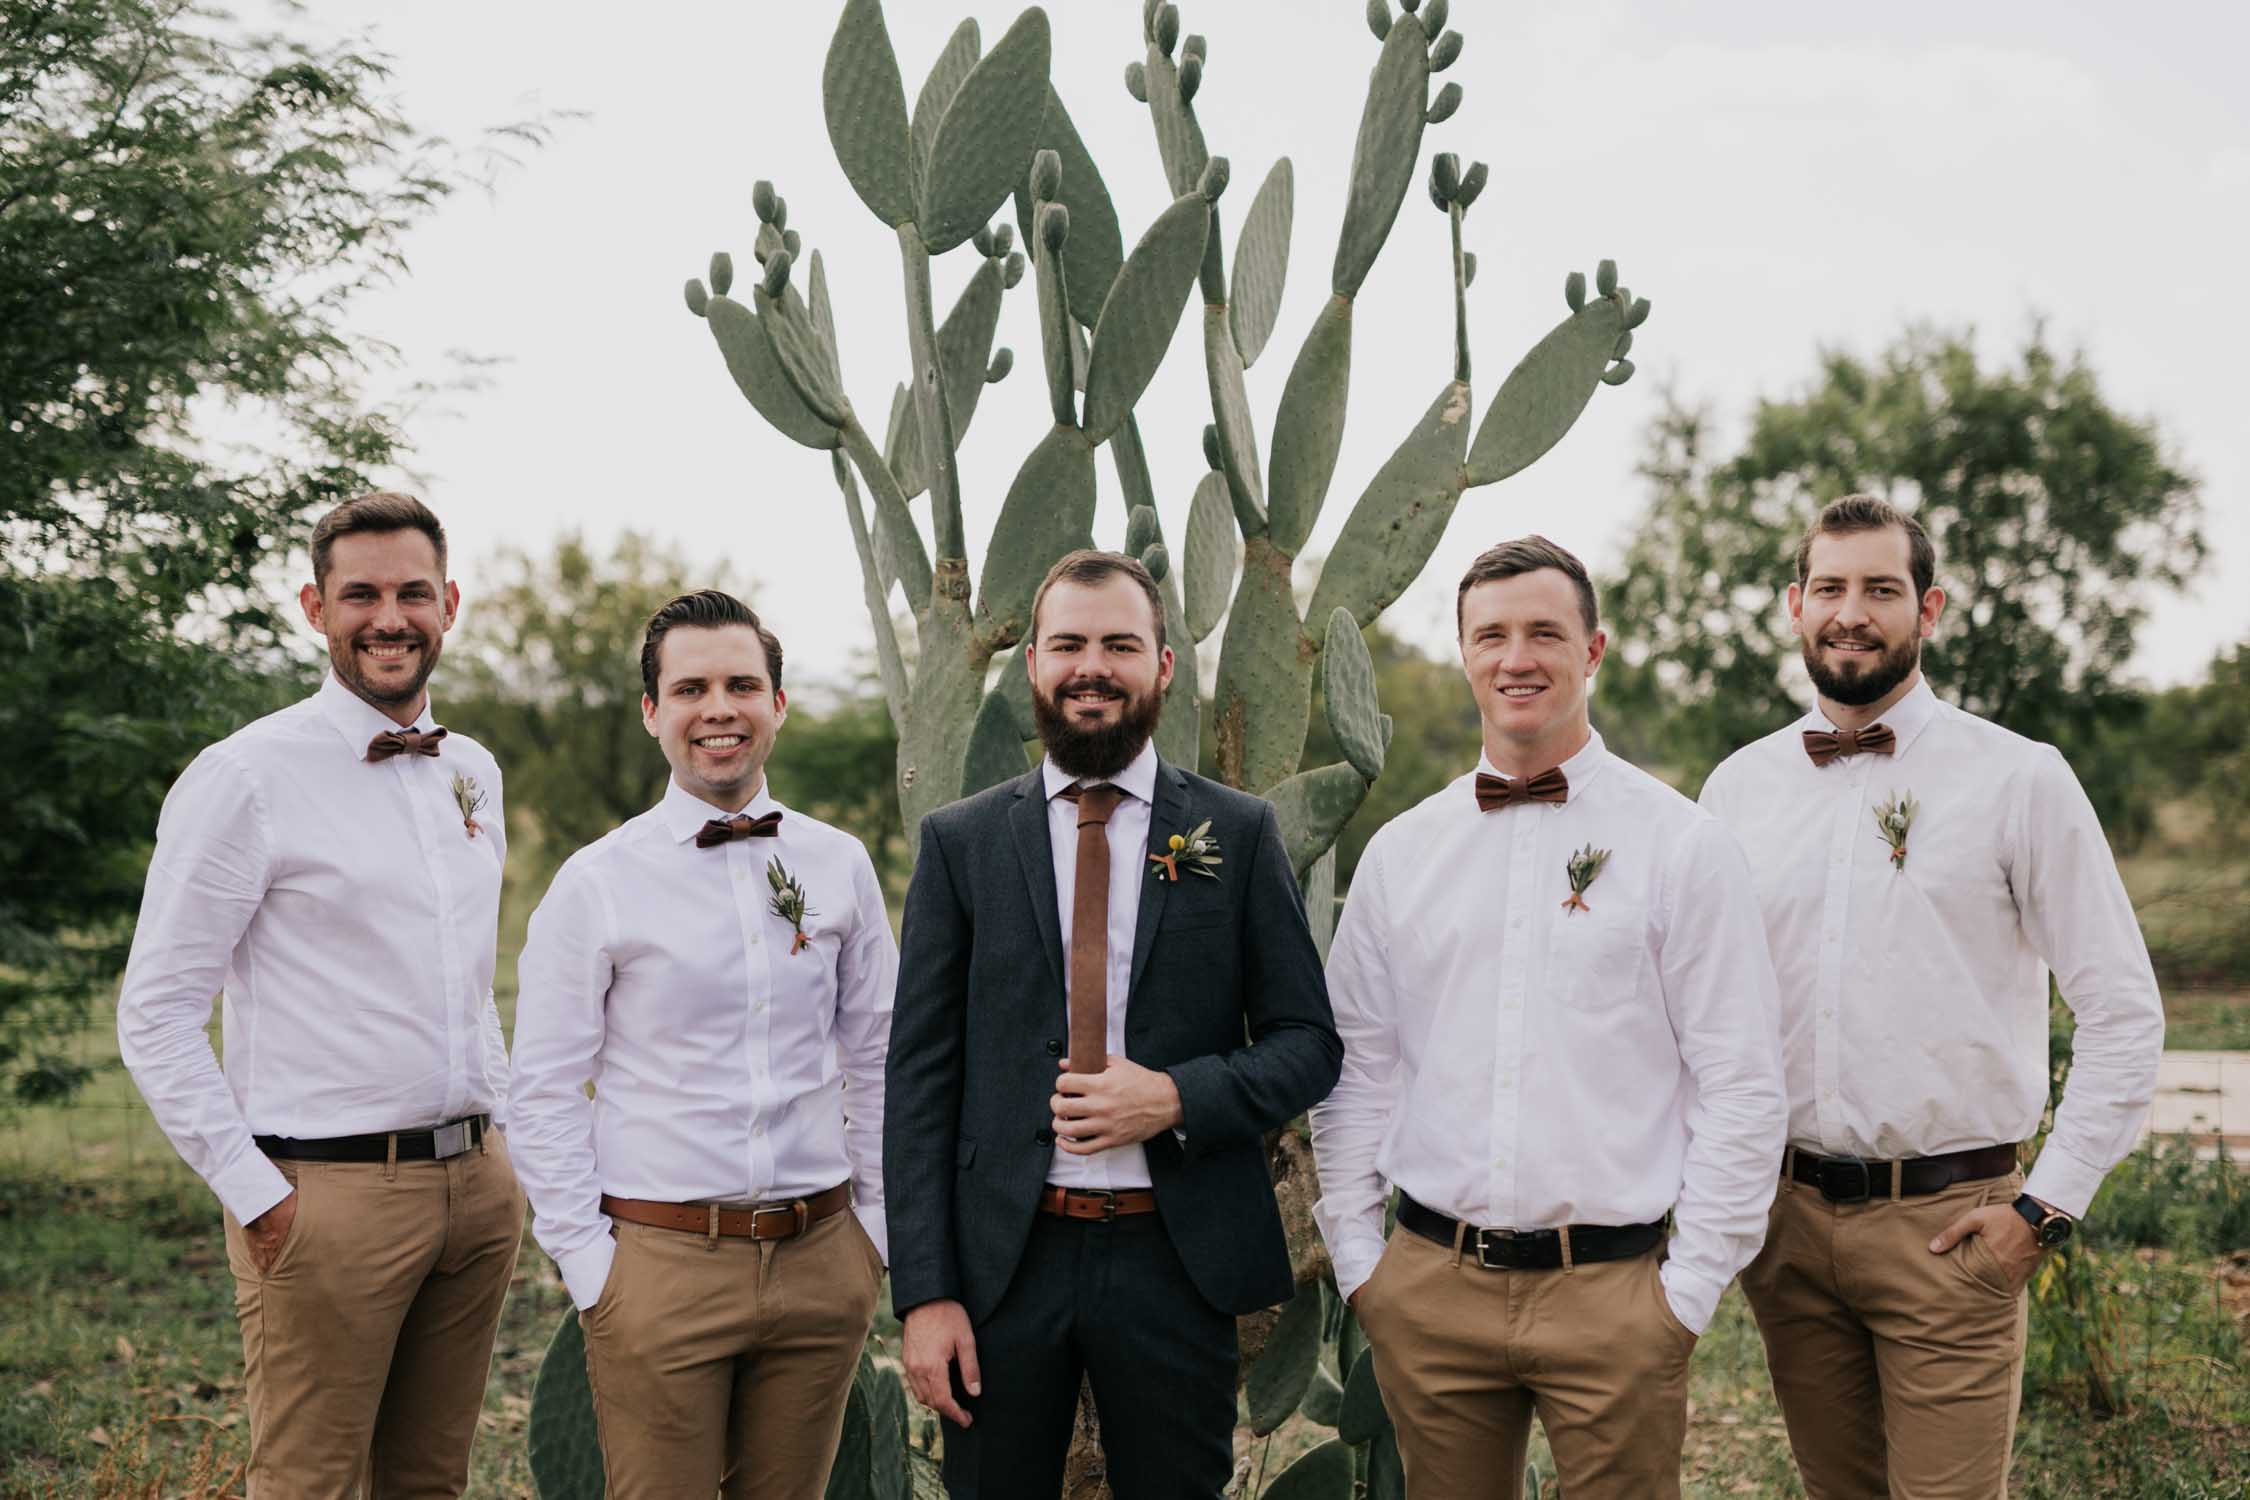 Portrait of hipster groom and groomsmen in front of a cactus plant